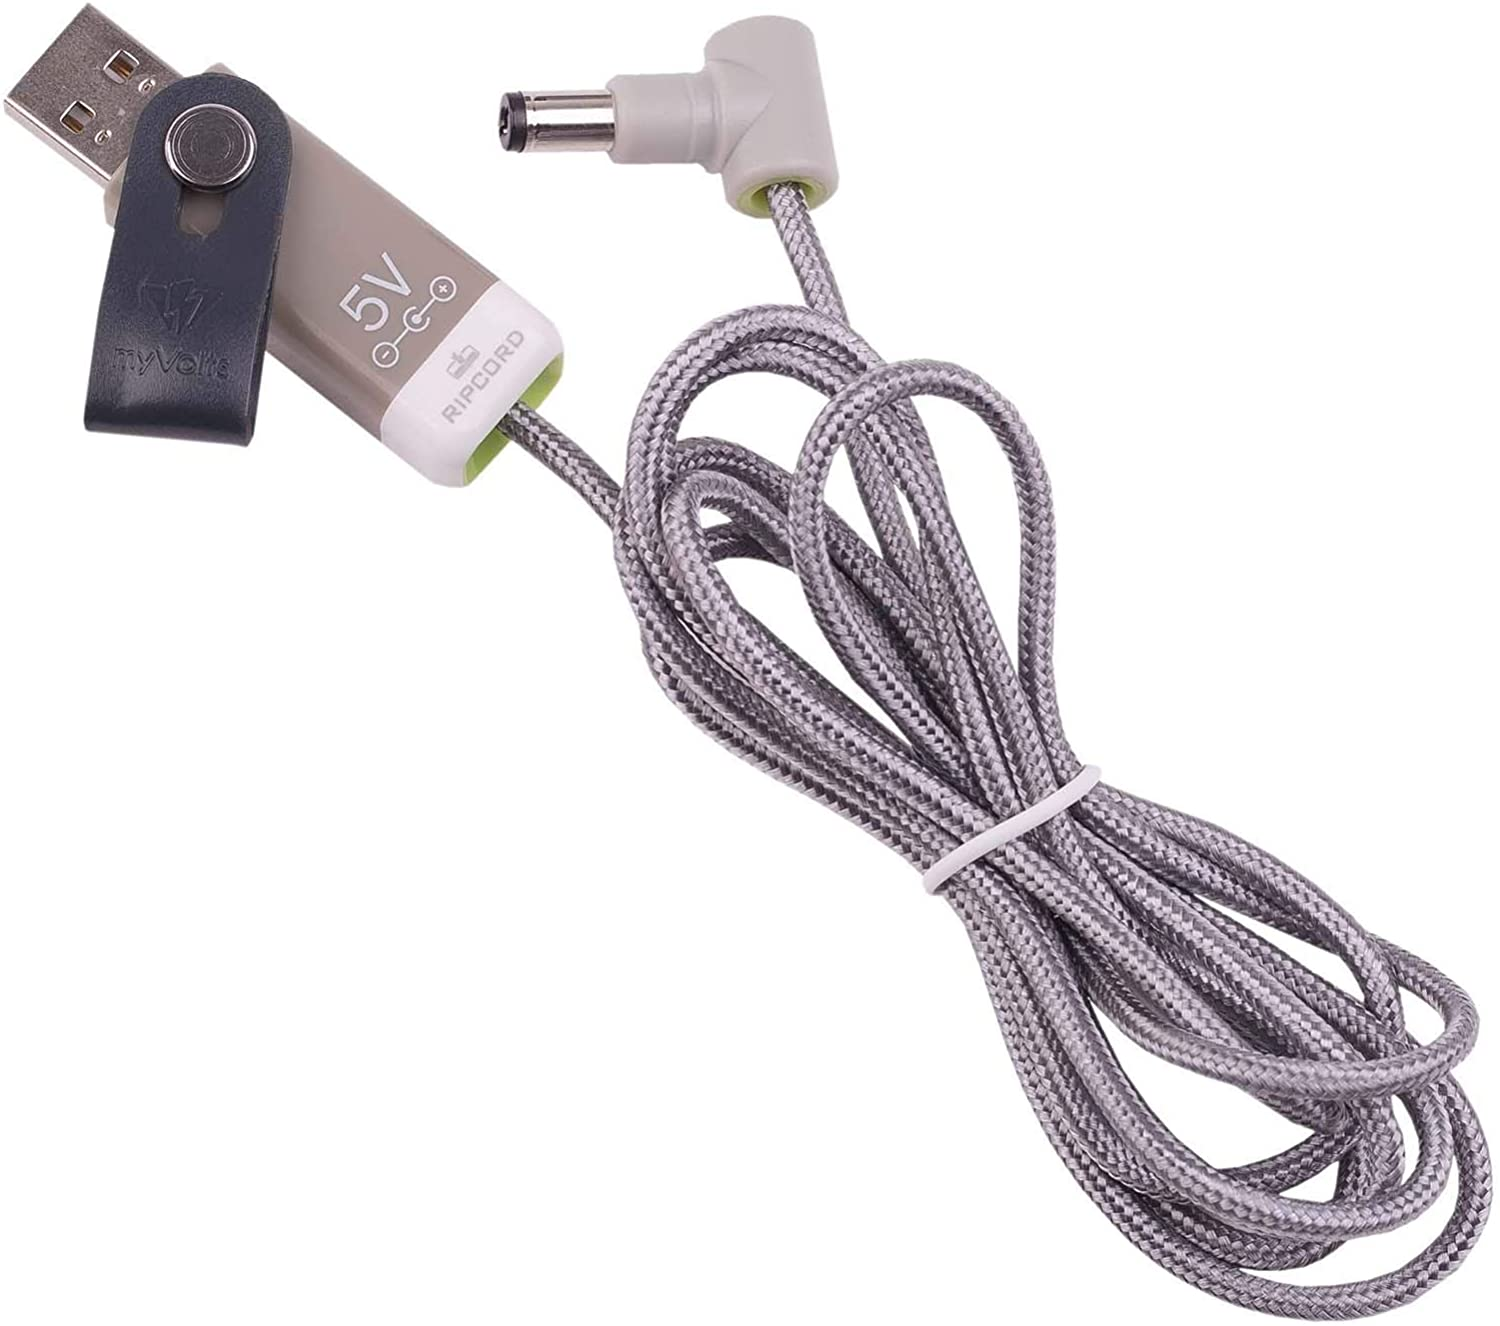 myVolts Ripcord - USB to 5V DC Power Cable Compatible with The Buffalo WHR-HP-G54 Router